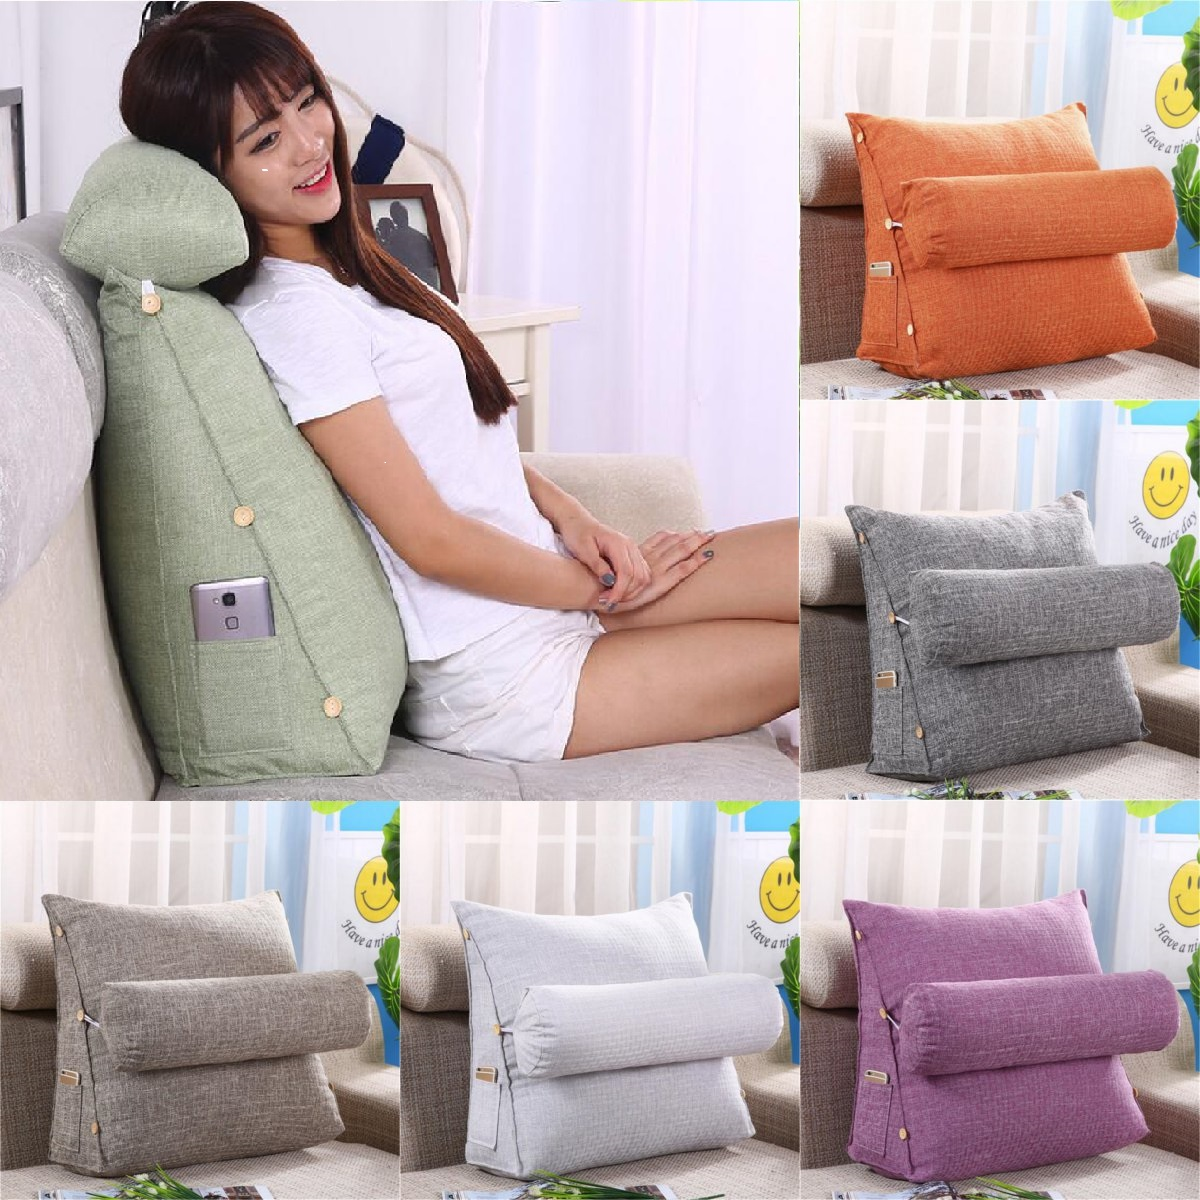 24x20x8inch large wedge shaped reading and tv pillow with adjustable neck pillow triangle pillow back support adjustable back wedge cushion rest